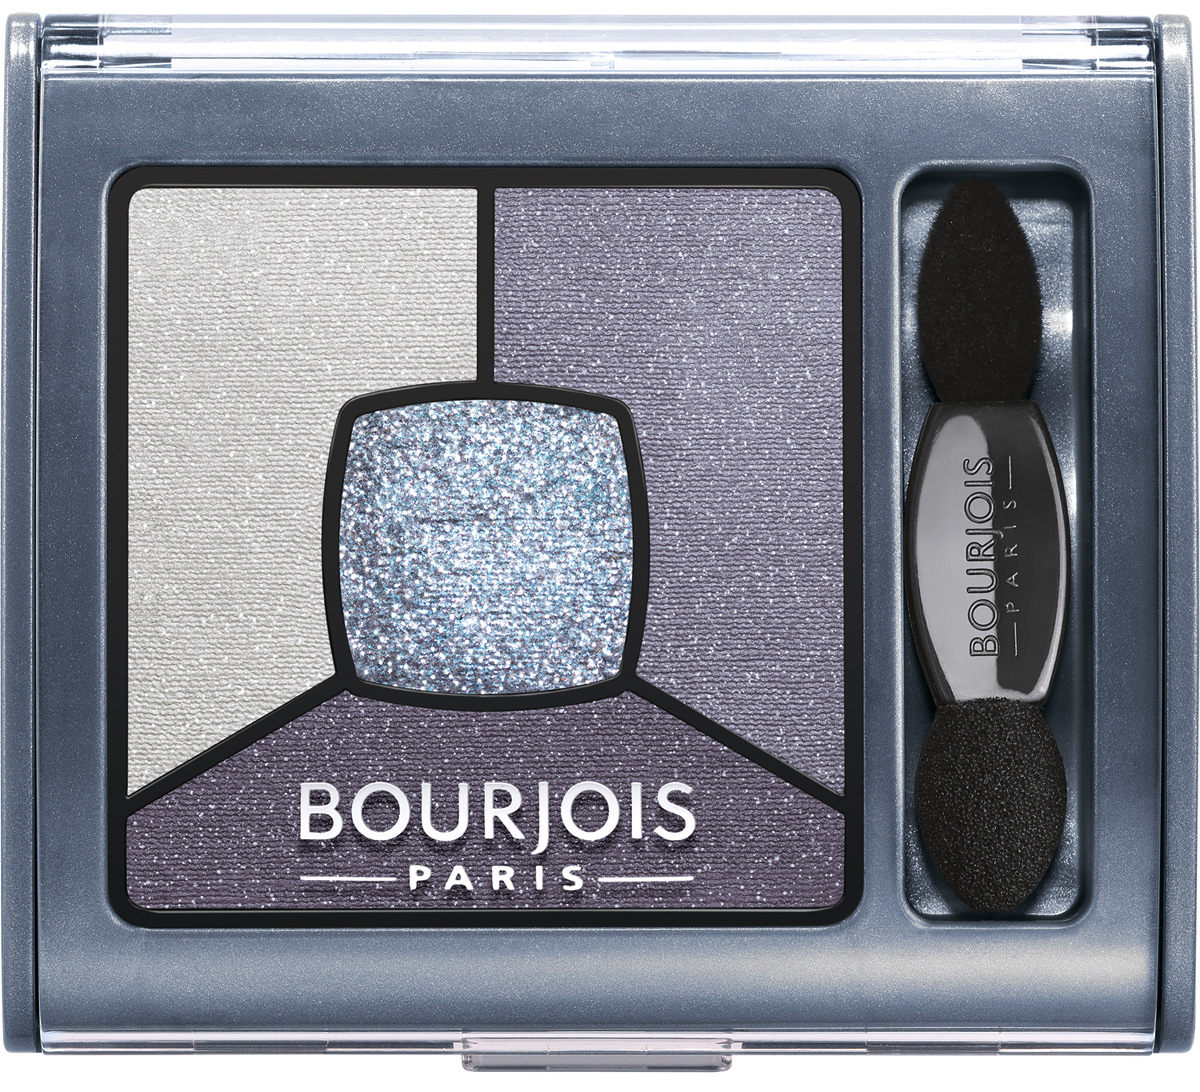 highland obsession Bourjois Палитра теней для век Smoky Stories Тон 08 ocean obsession 3 мл